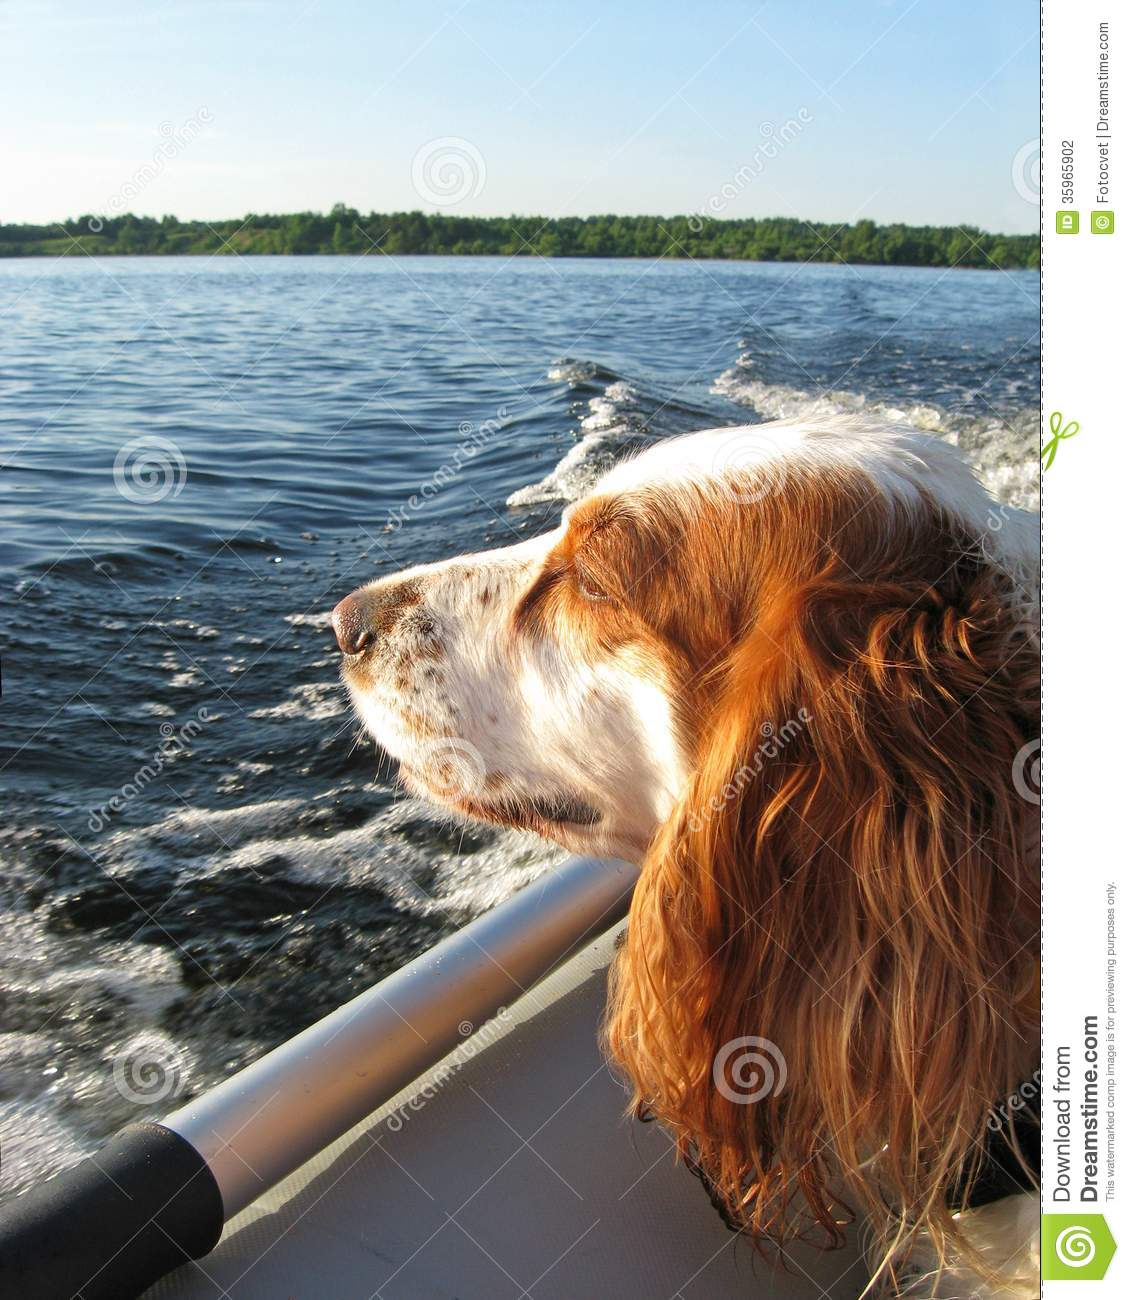 Hond in de boot